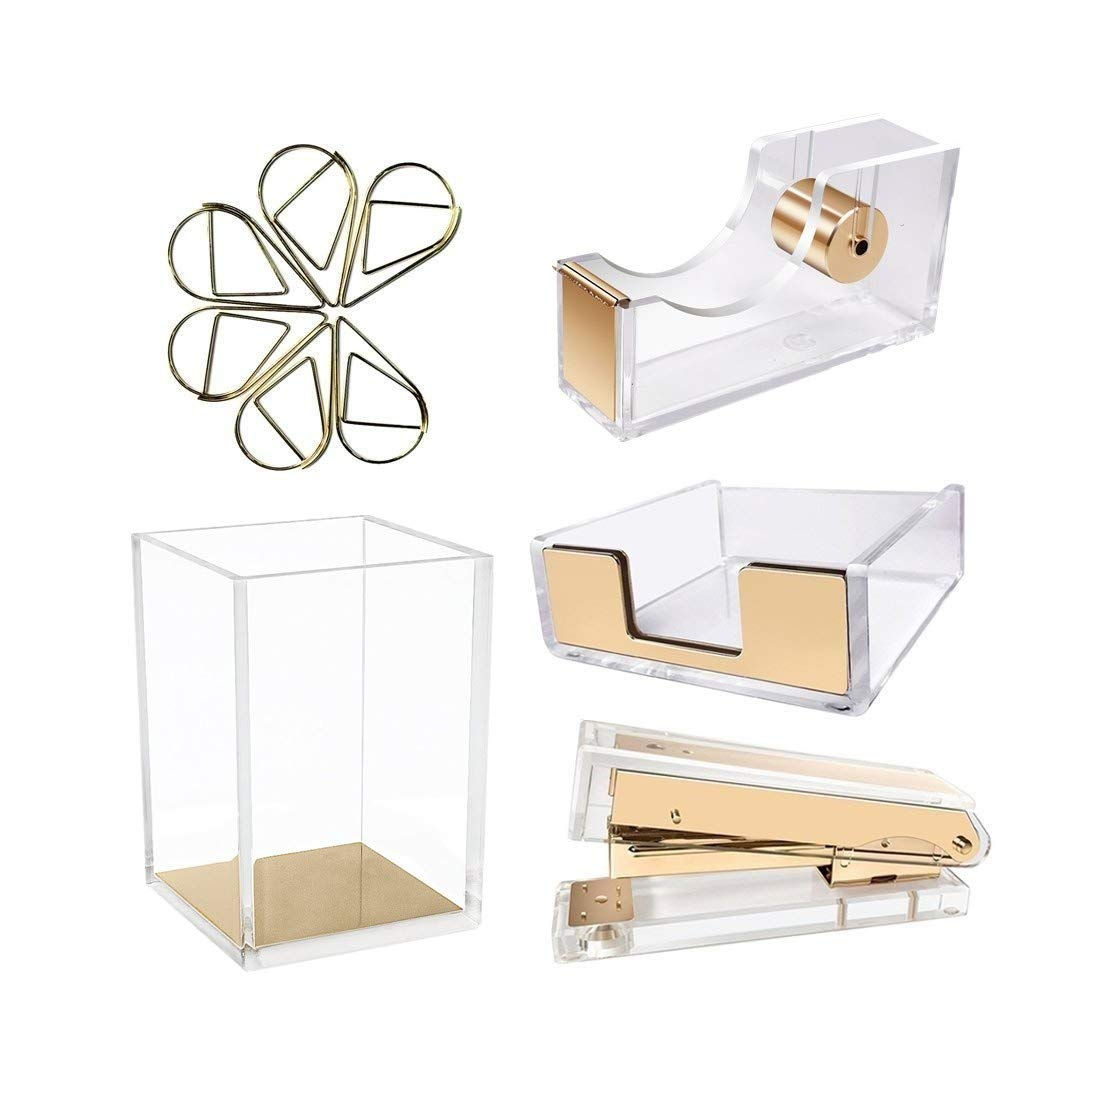 UNIQOOO 5 Count Super Thick Clear Acrylic Gold Finish Stationery Set - Desk Stapler, Pen Holder, Tape Dispenser, Memo Case, Paper Clips- Great for Modern Office, Arts Lover, Calligrapher, Great Gift